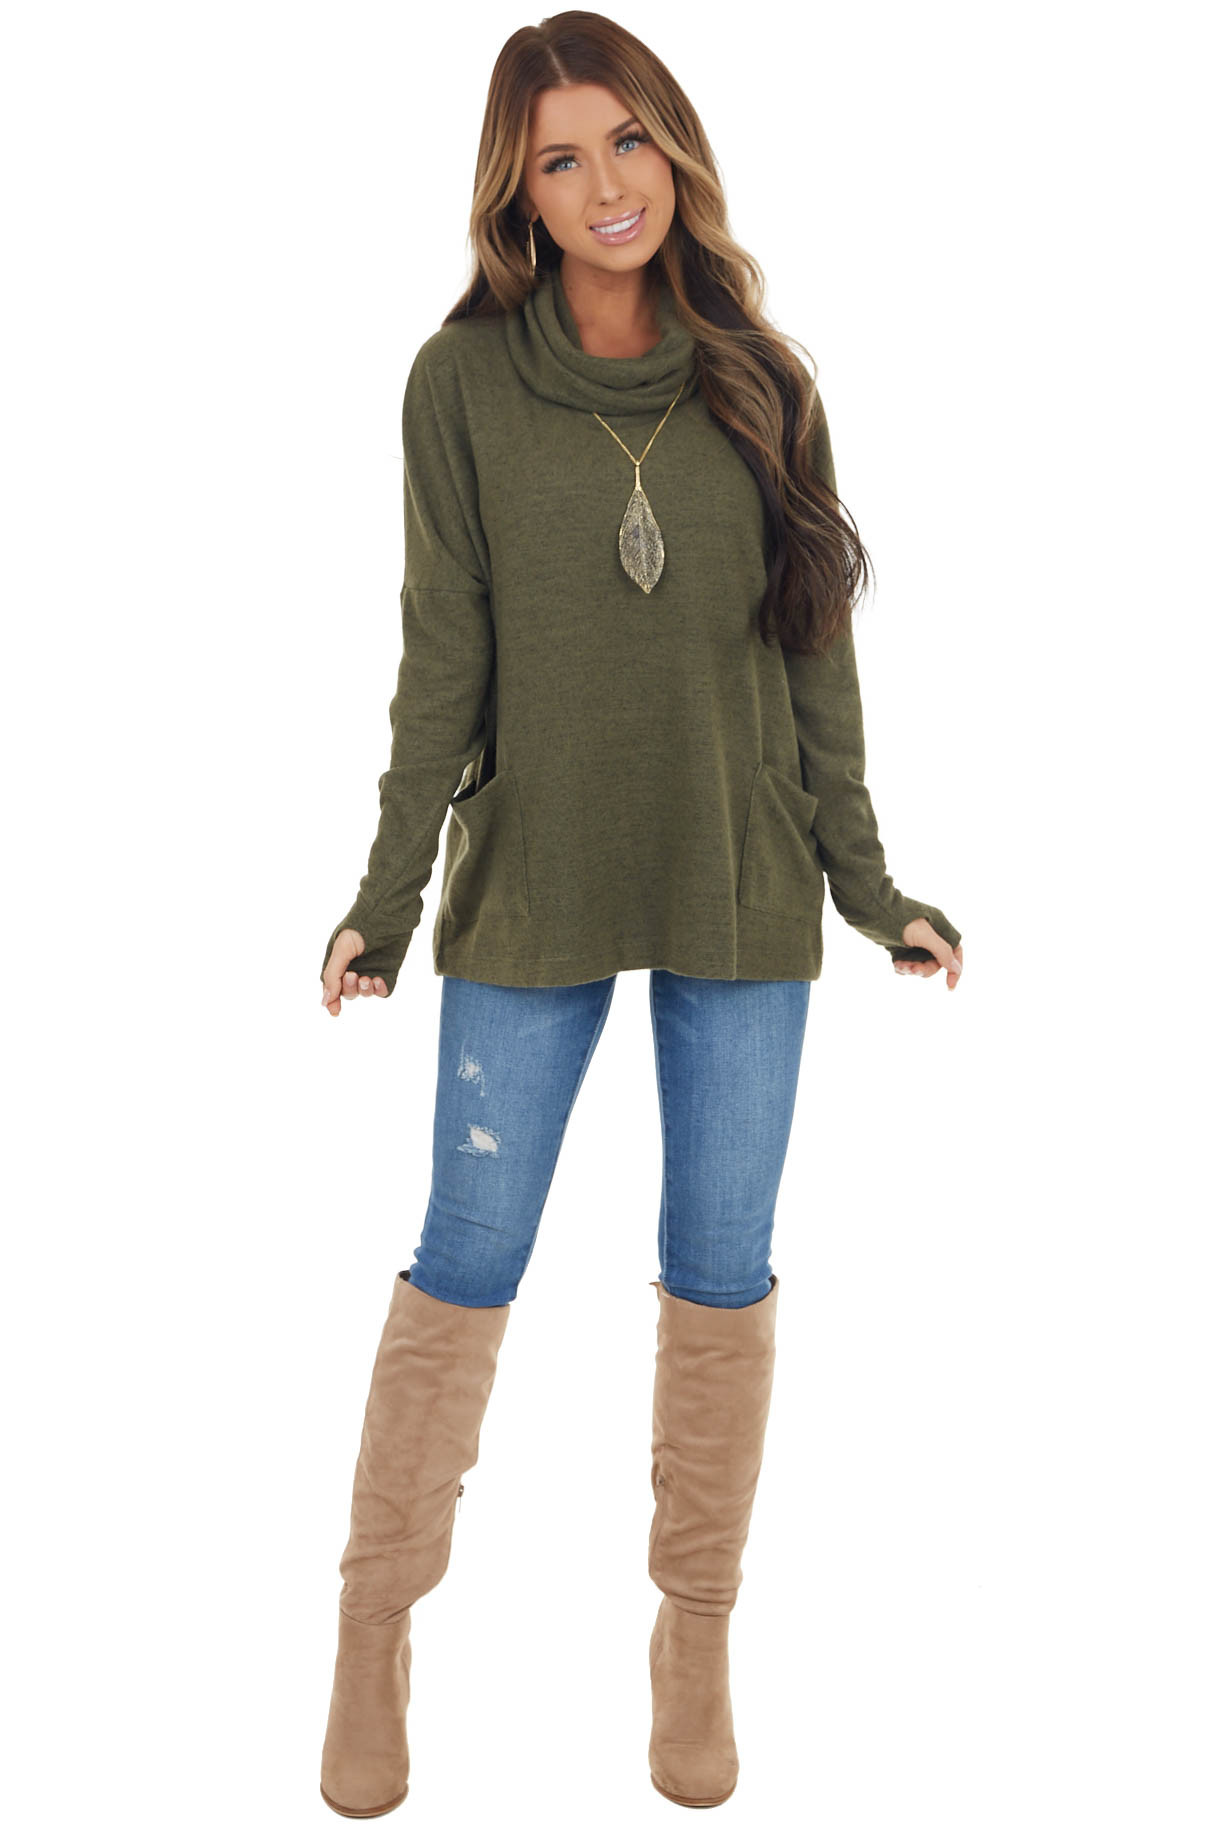 Heathered Olive Brushed Knit Cowl Neck Top with Pockets